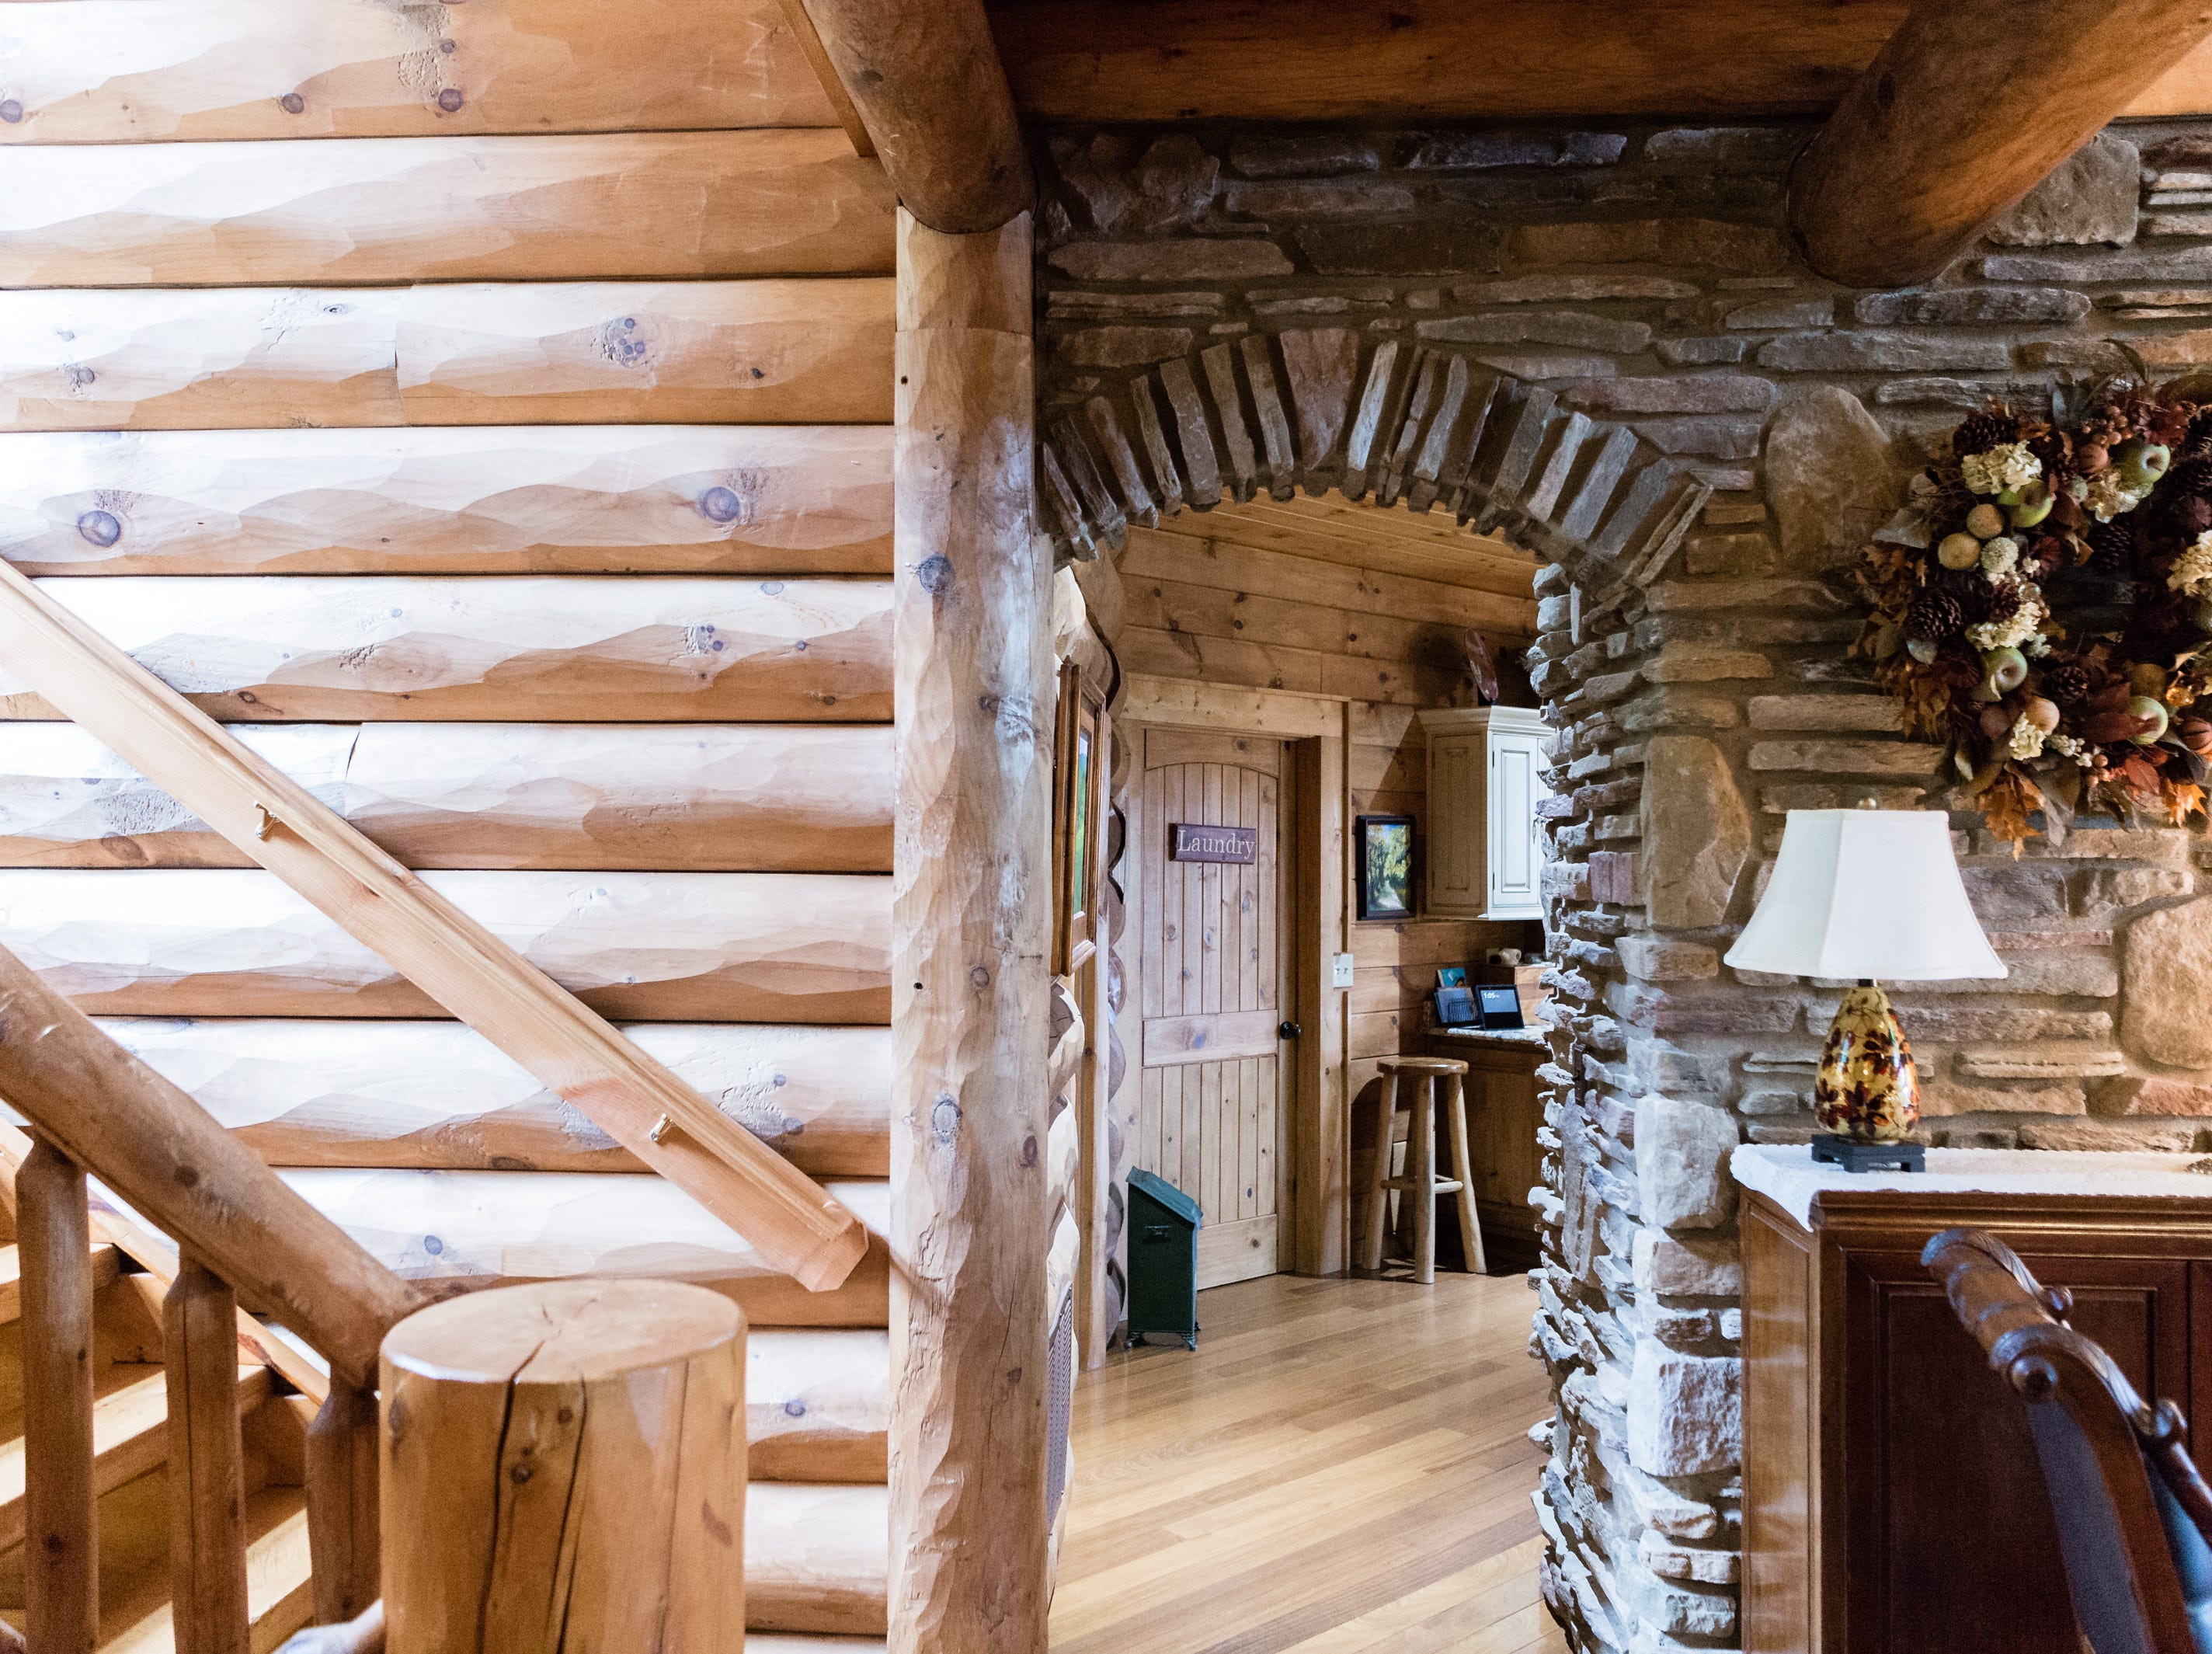 An archway leading to the kitchen of Dan and Belle Fangmeyer's log cabin in Waynesville.